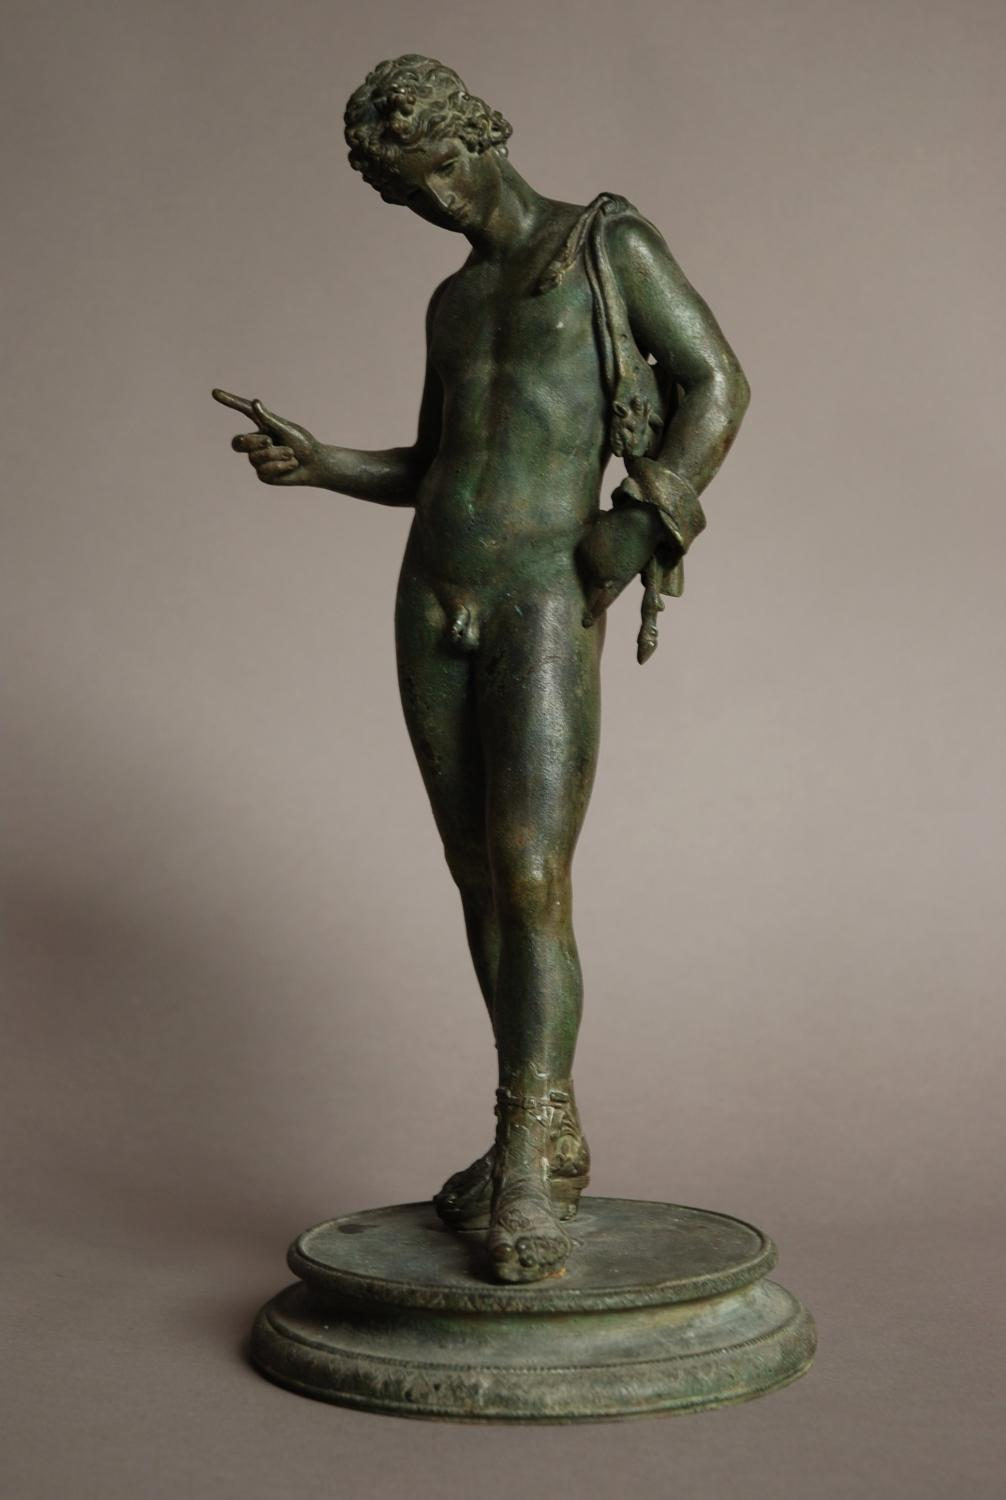 Bronze of Narcissus with green patination